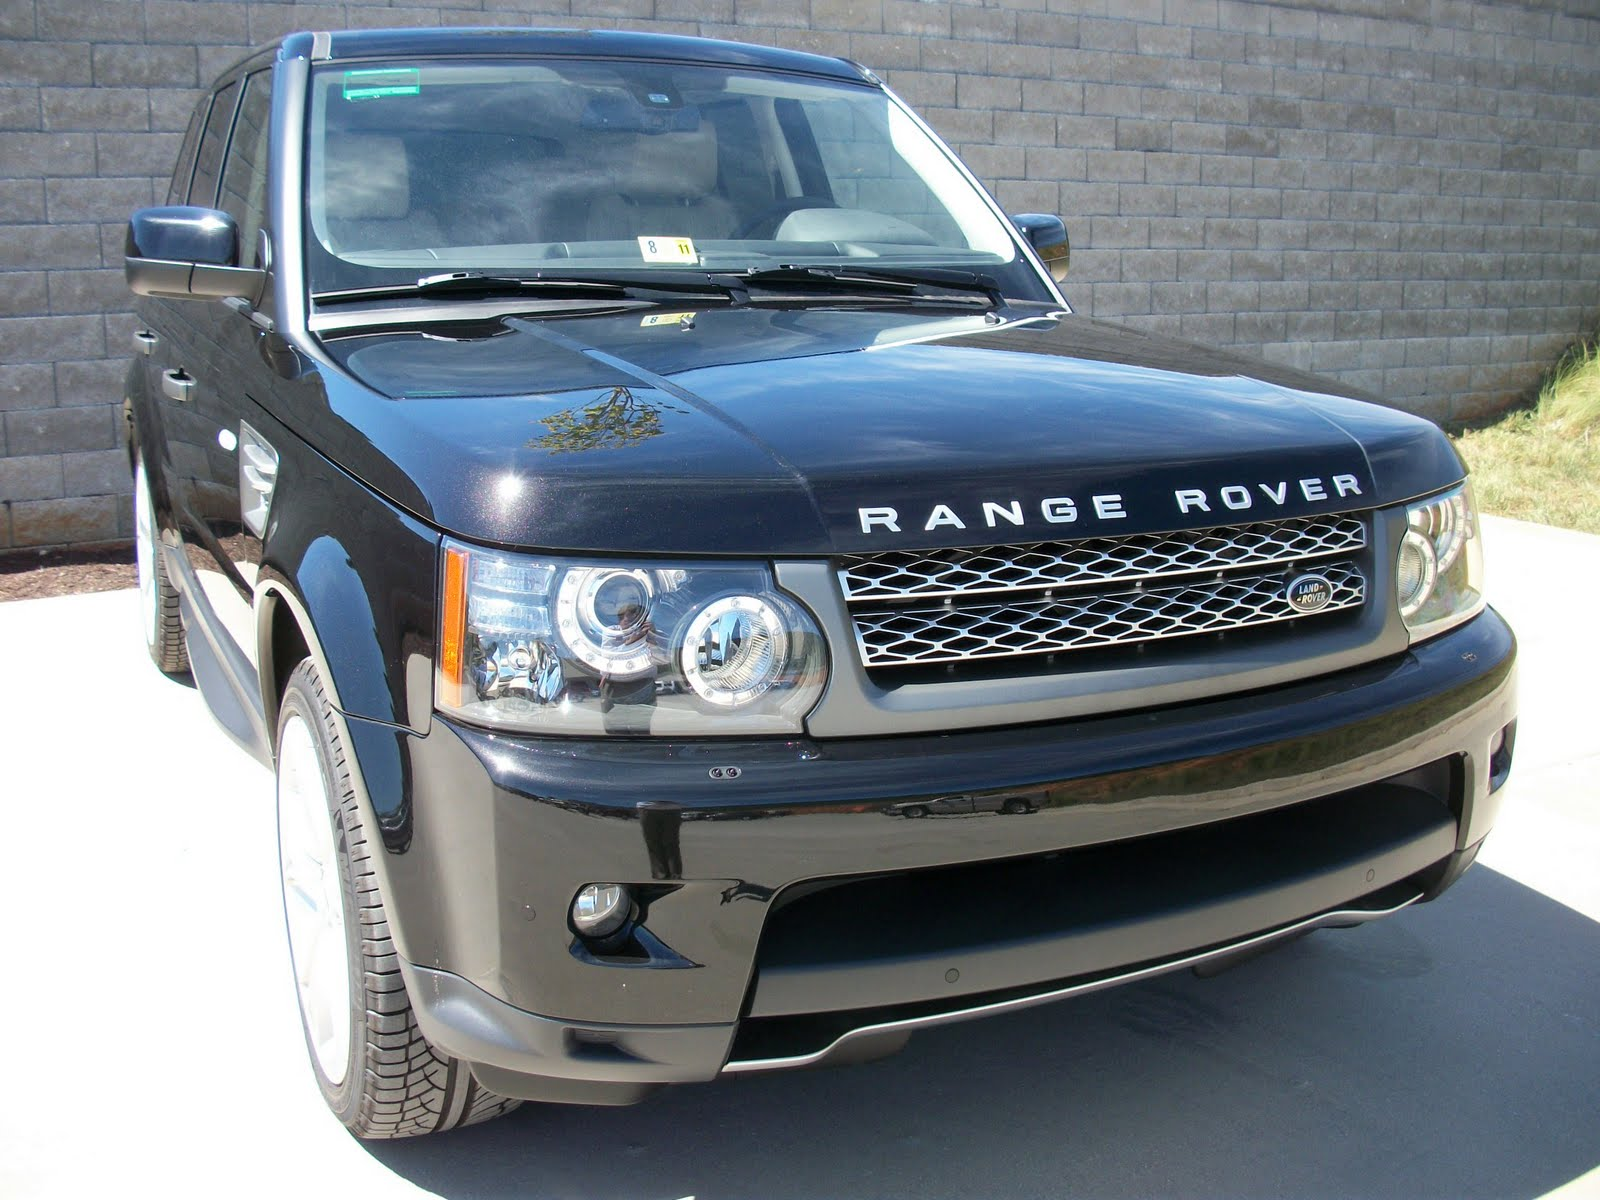 2010 land rover range rover sport supercharged i take pictures of cars. Black Bedroom Furniture Sets. Home Design Ideas